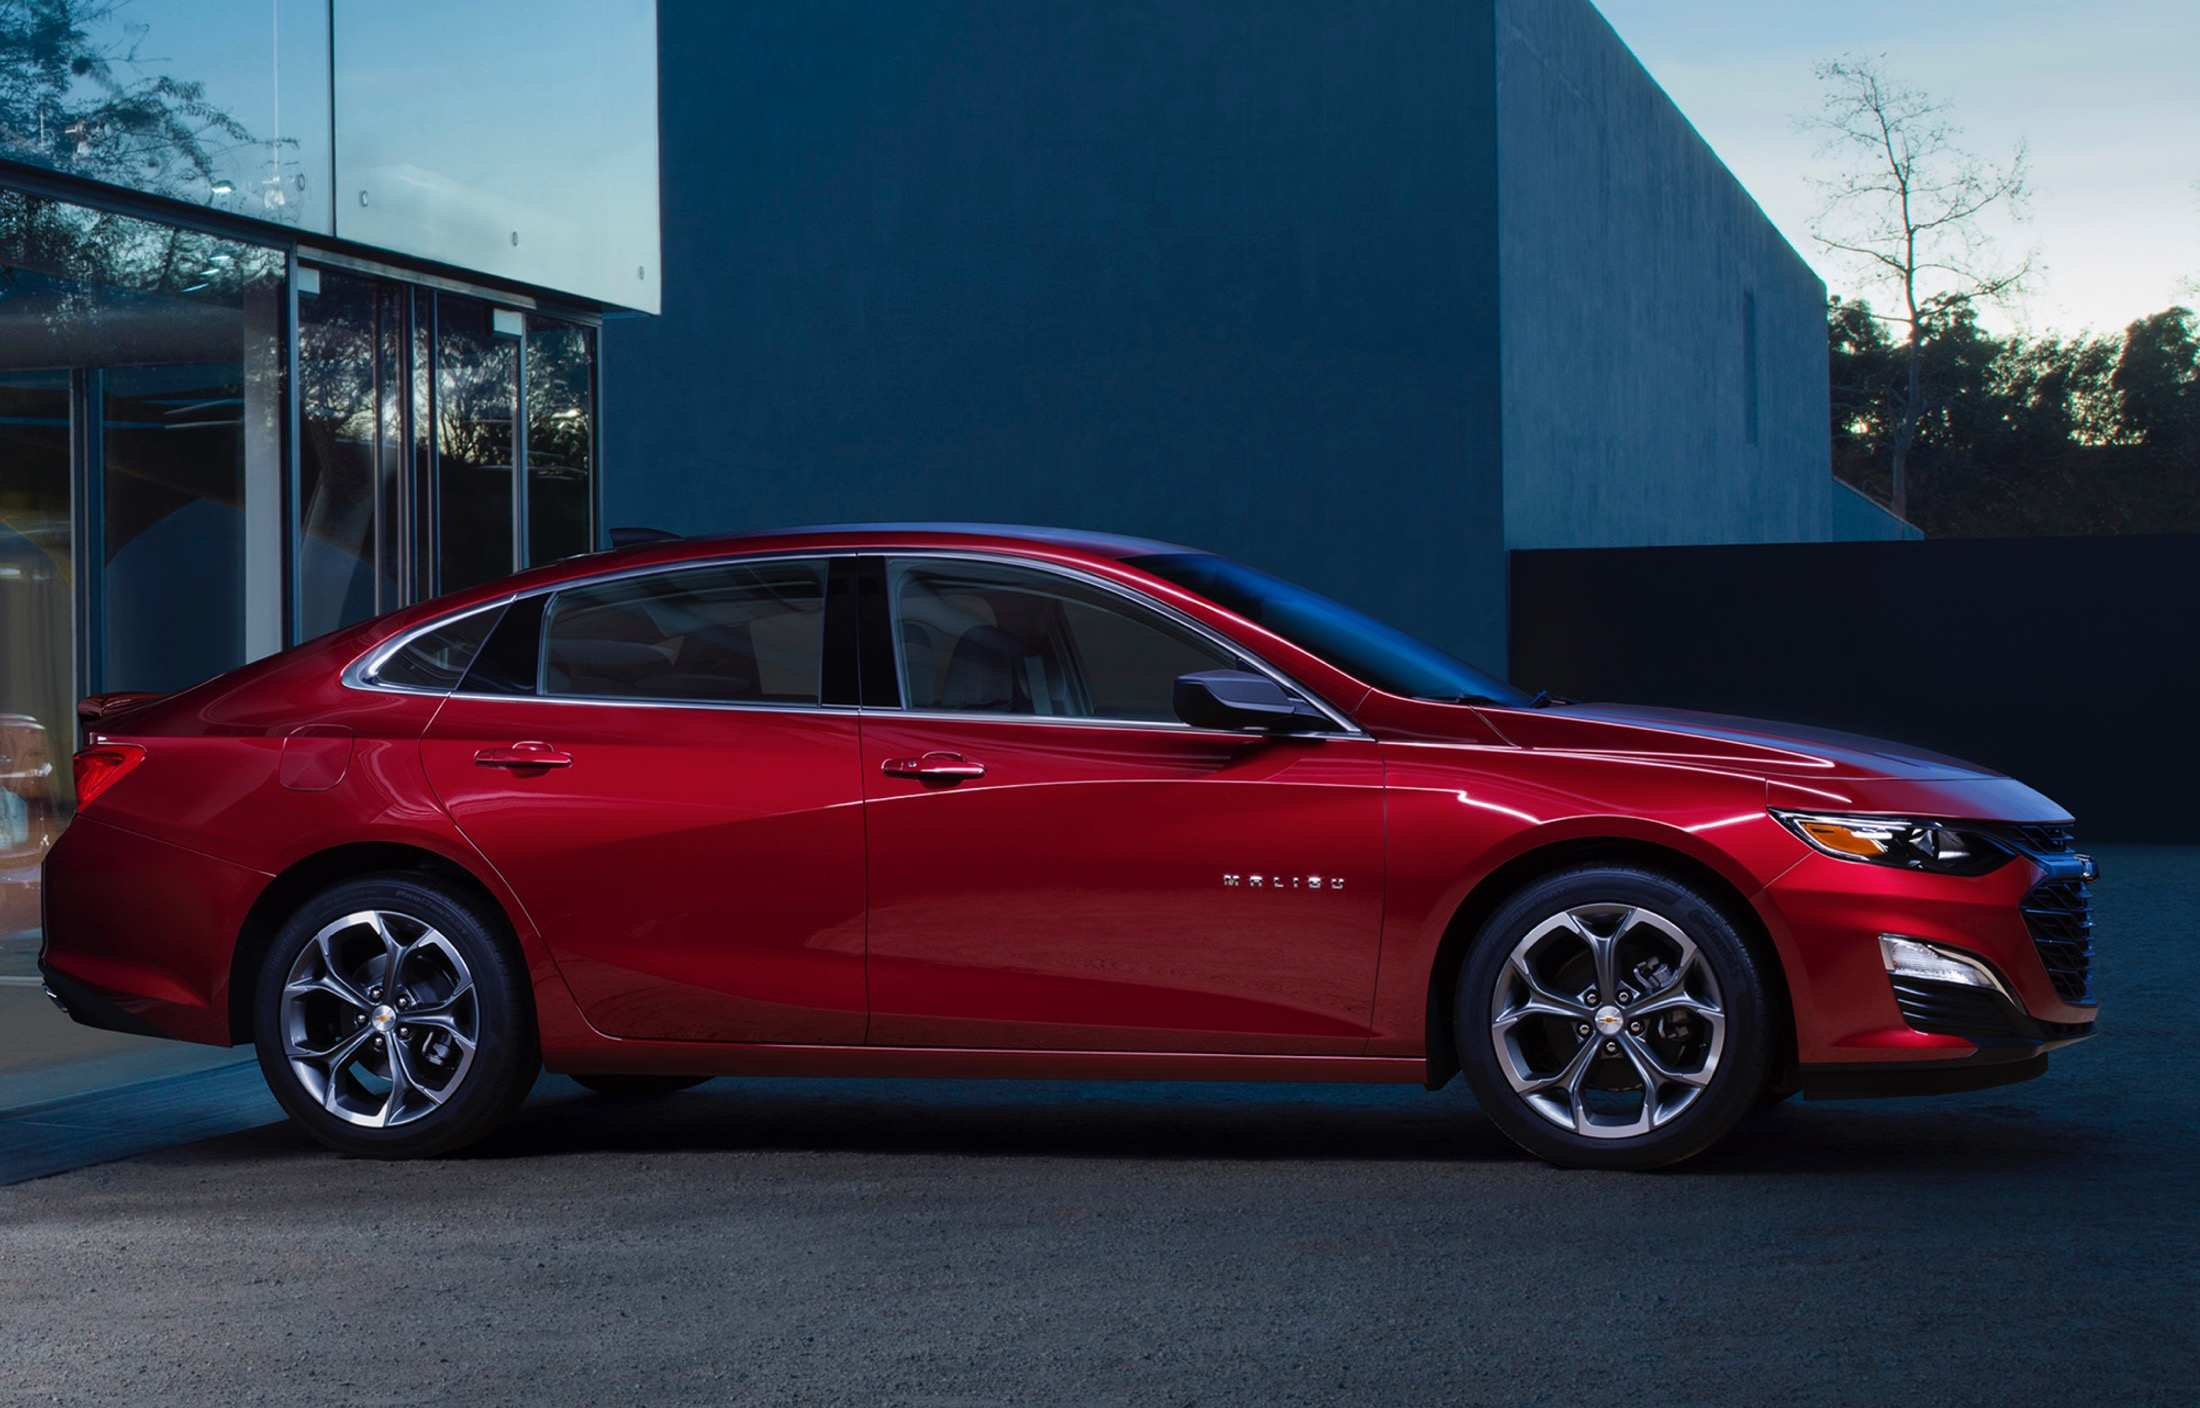 28 New 2019 Chevy Malibu Ss Picture